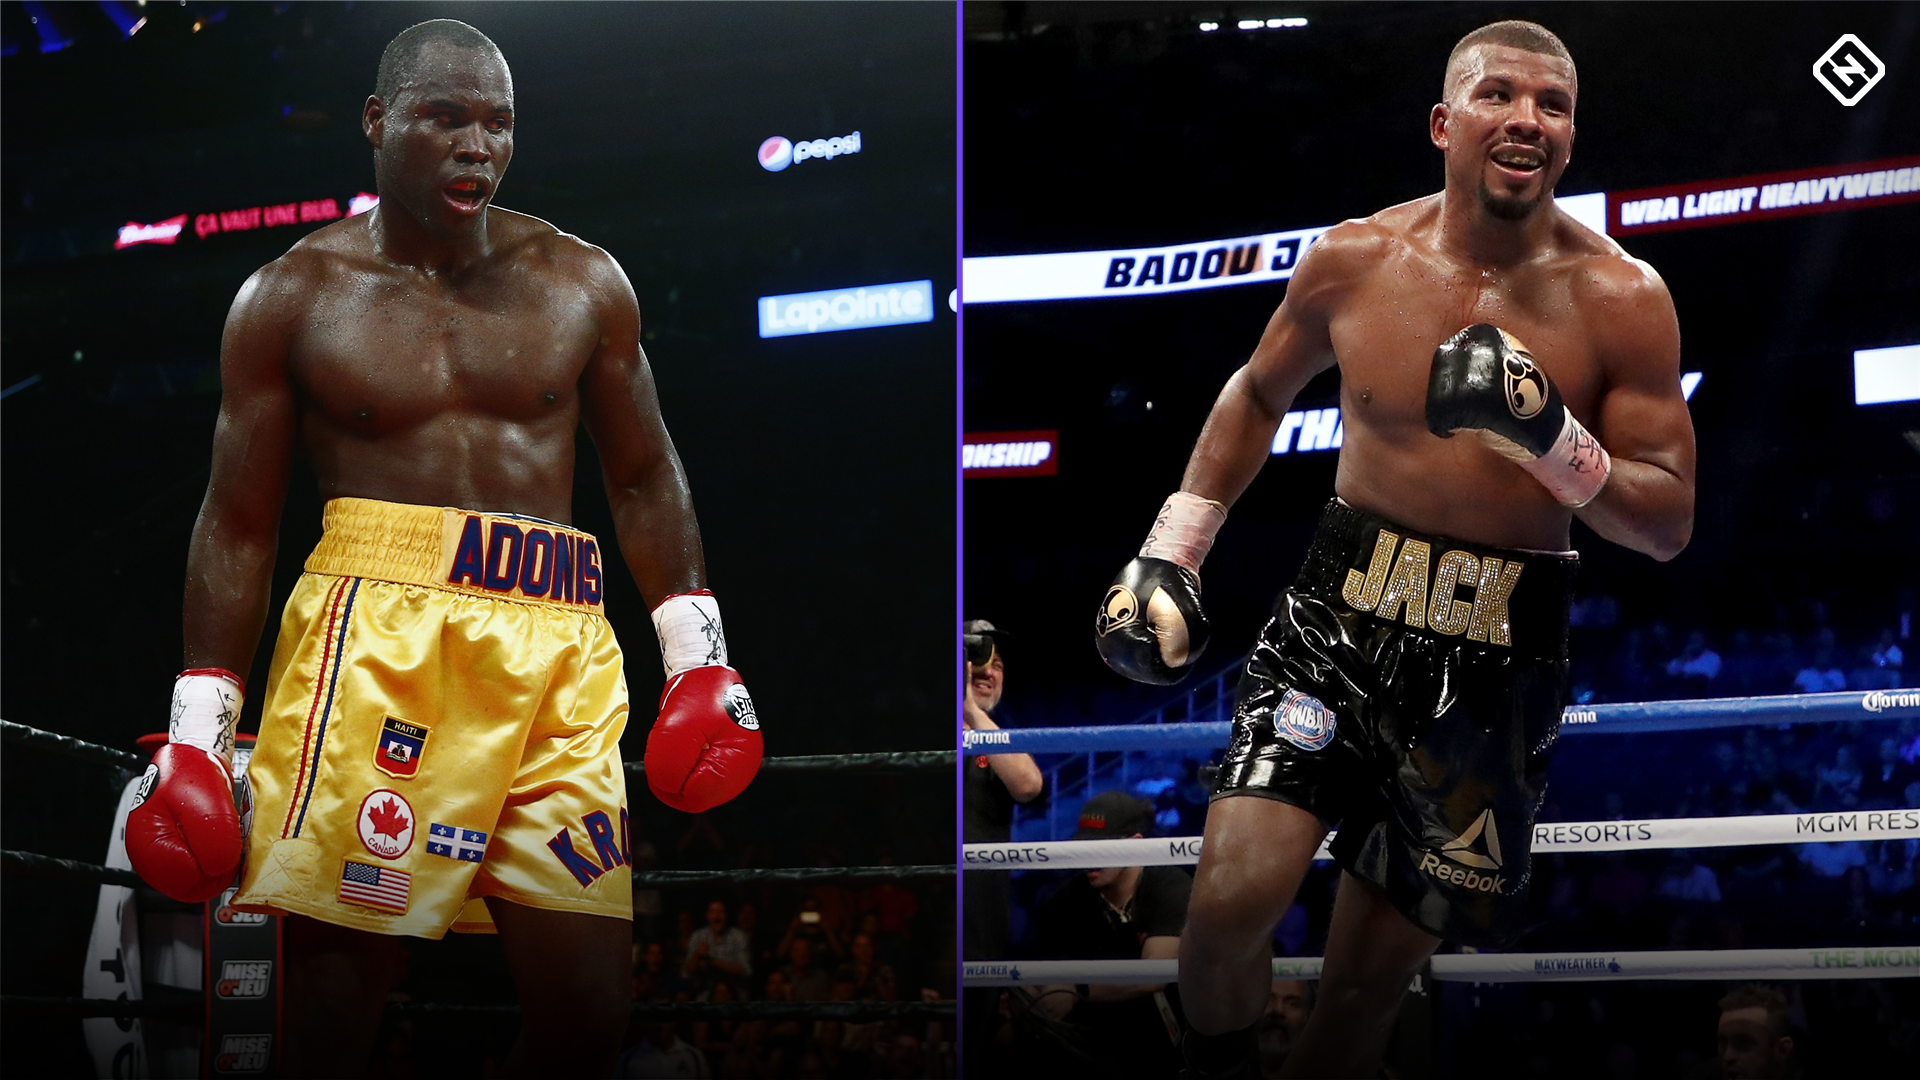 Stevenson vs. Jack: Stats, facts for WBC light heavyweight title bout